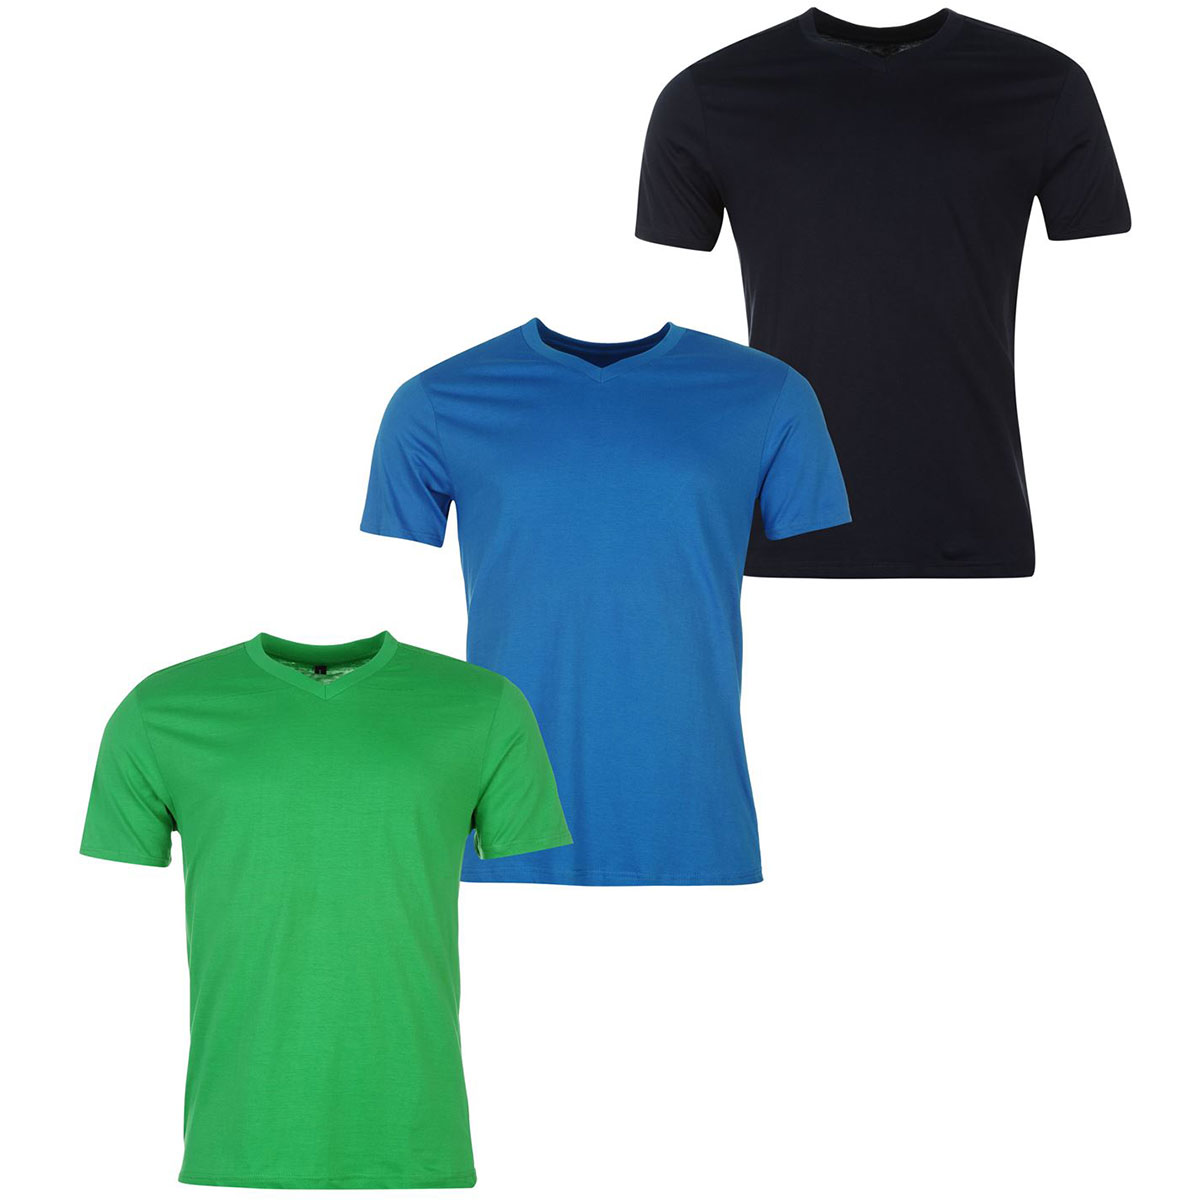 Donnay Men's V-Neck Short-Sleeve Tees, 3-Pack - Various Patterns, S